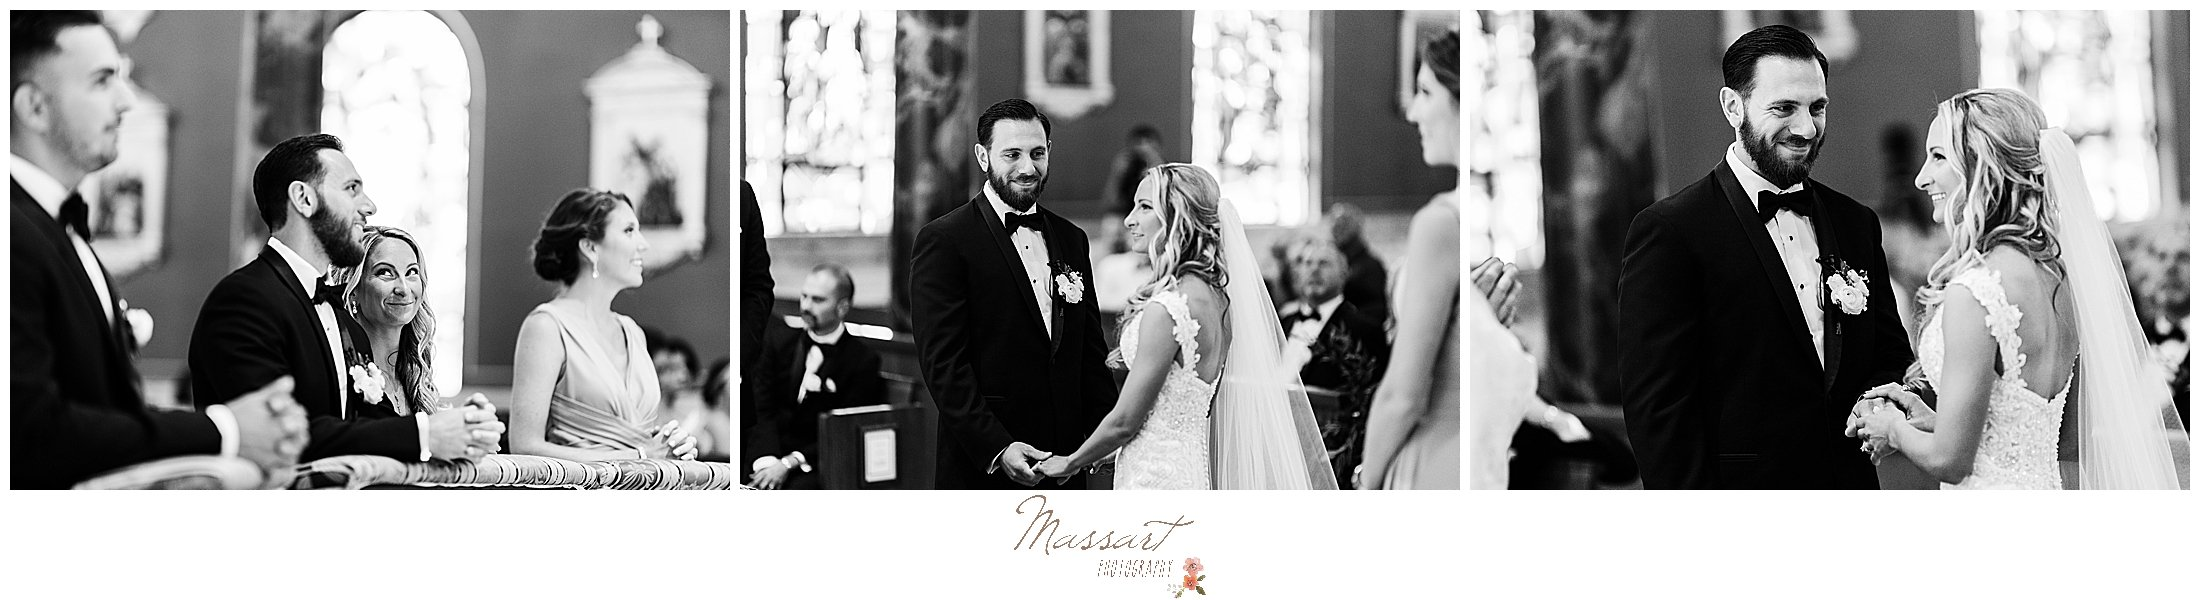 bride and groom exchange vows during traditional church wedding in Rhode Island